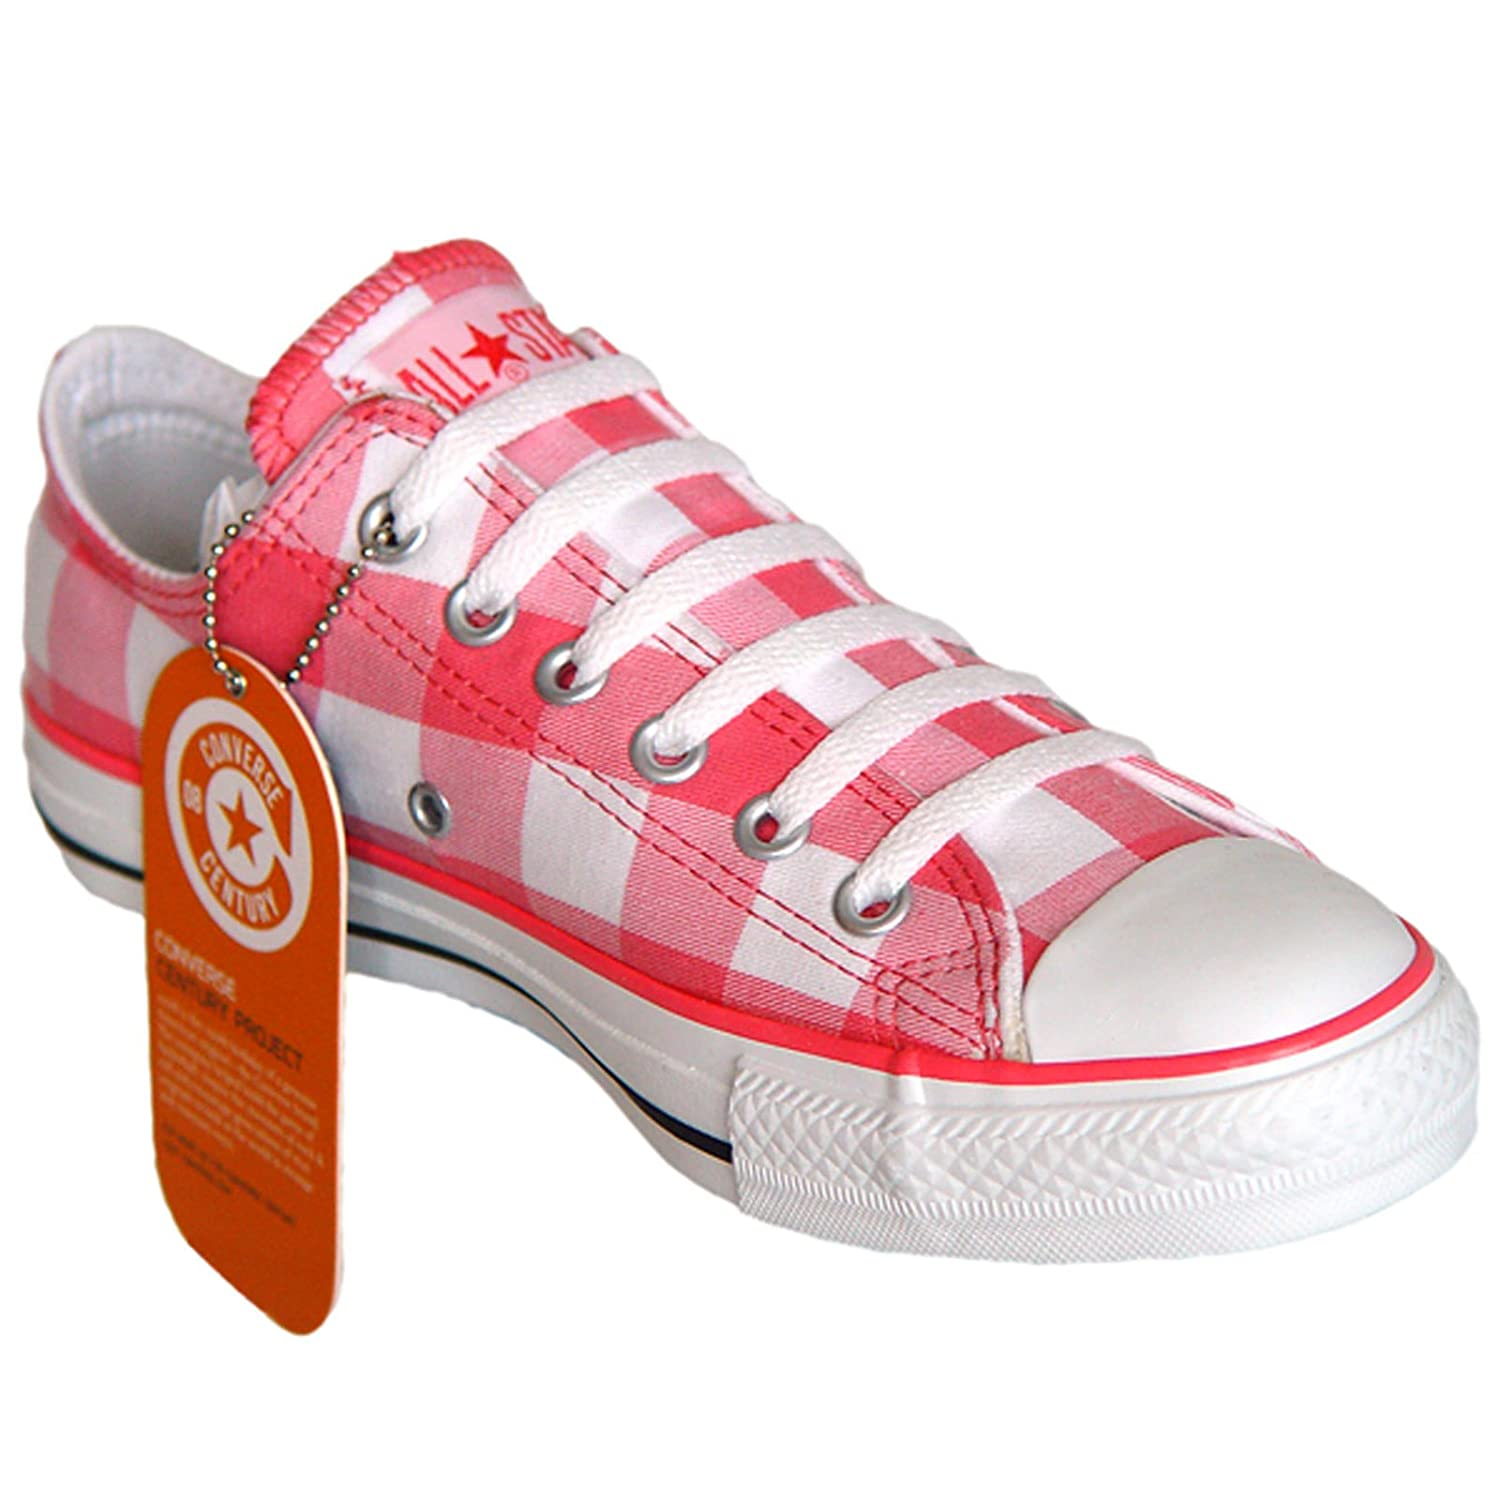 bda7334abdaa04 Converse All Star Chucks Weiß Rosa OX Kariert Limited Edition Größe  36 UK   3